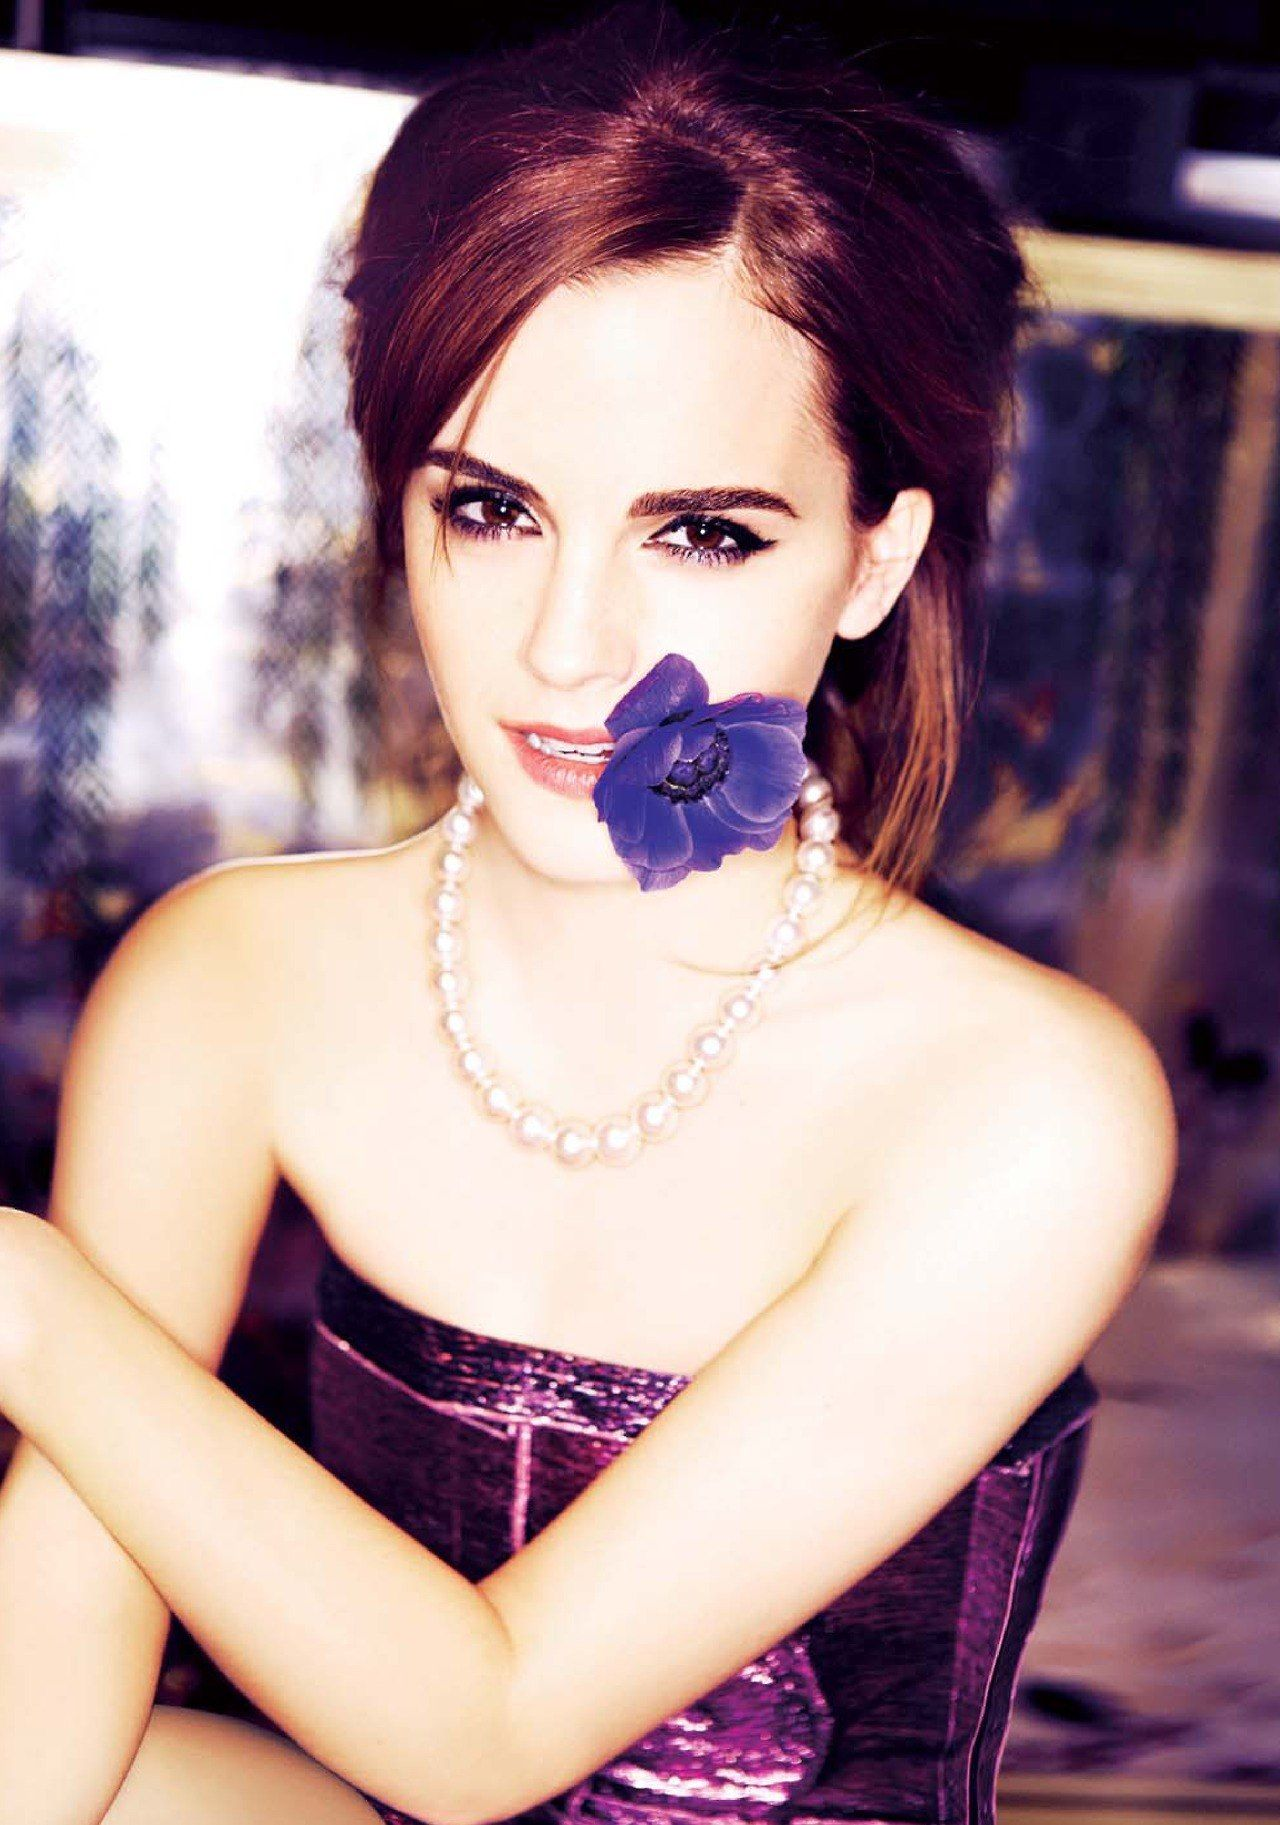 THE SUNDAY TIMES STYLE Emma Watson in The Joy of Youth by Ellen von Unwerth. Lucy Ewing, March 2014